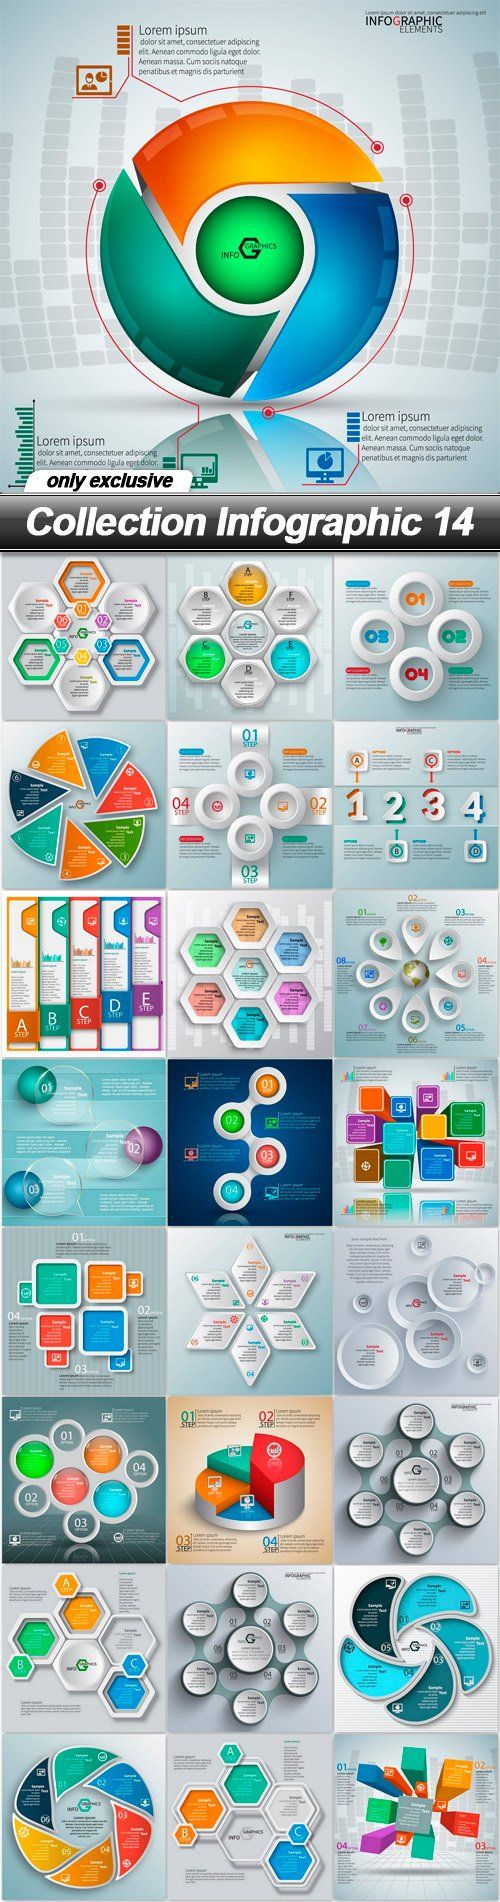 Collection Infographic 14 | Infographic, Infographics and ...